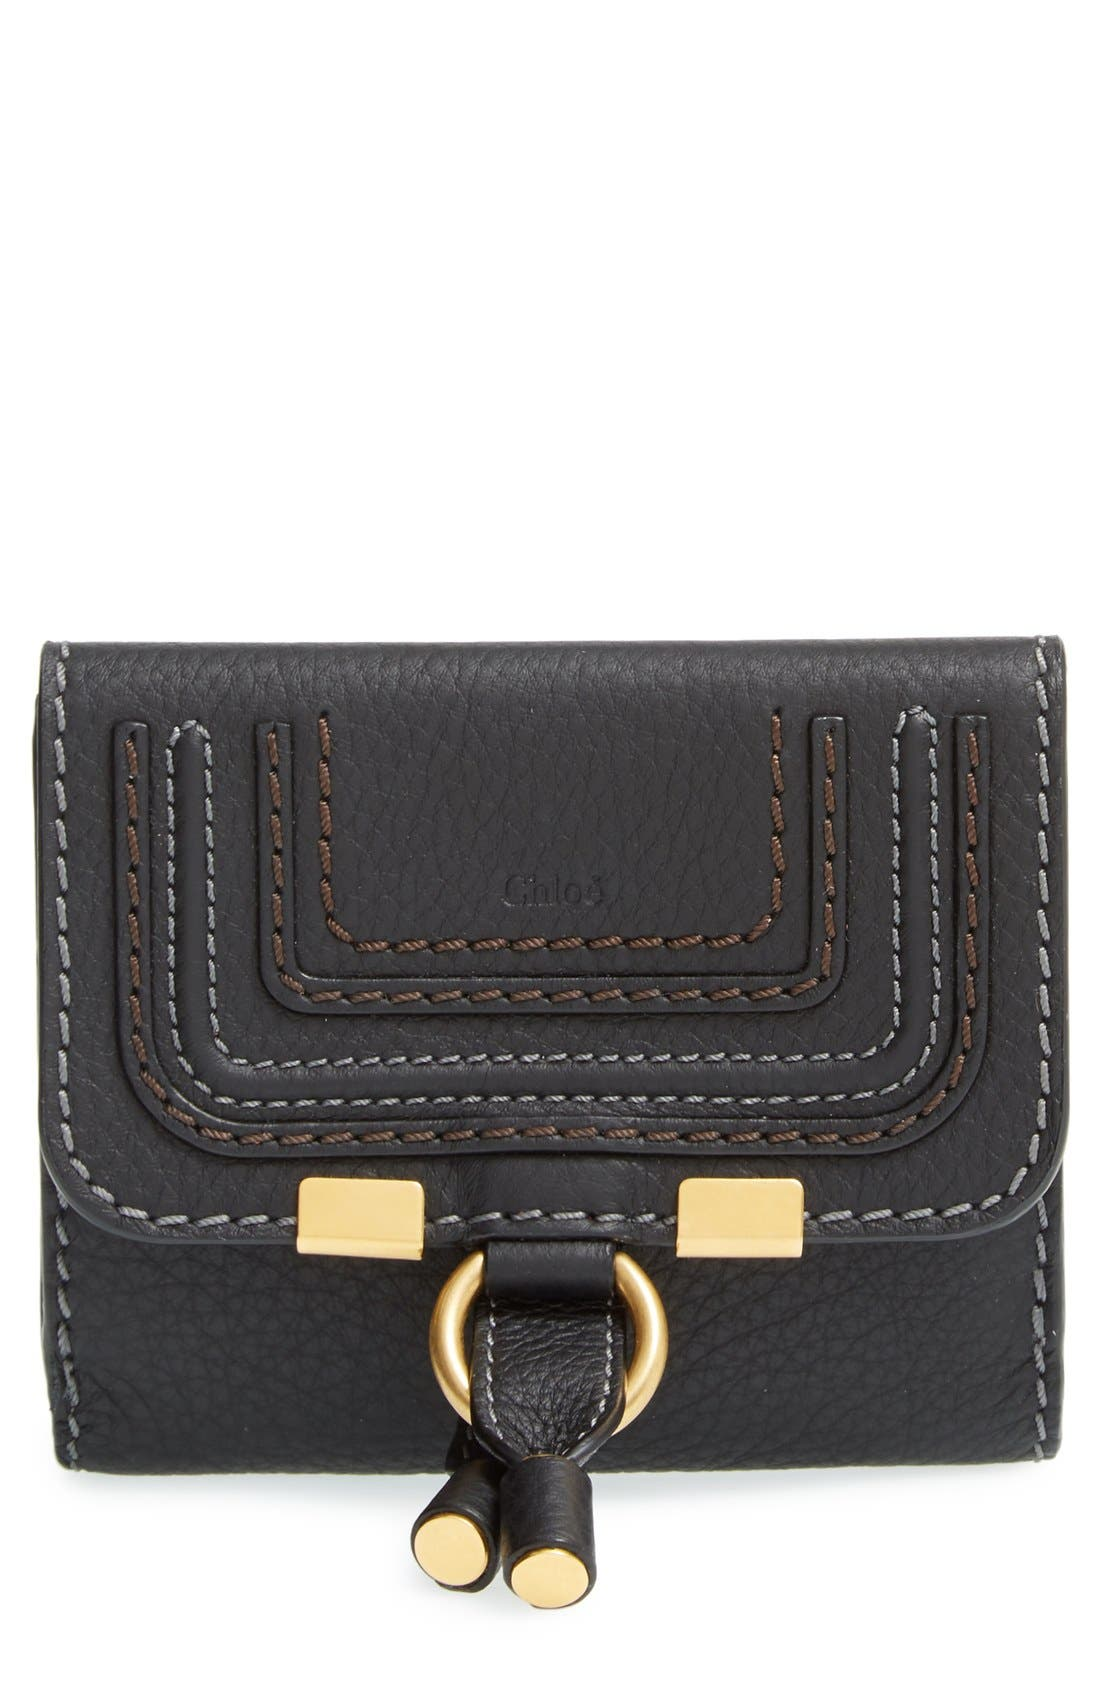 Main Image - Chloé 'Marcie' French Wallet